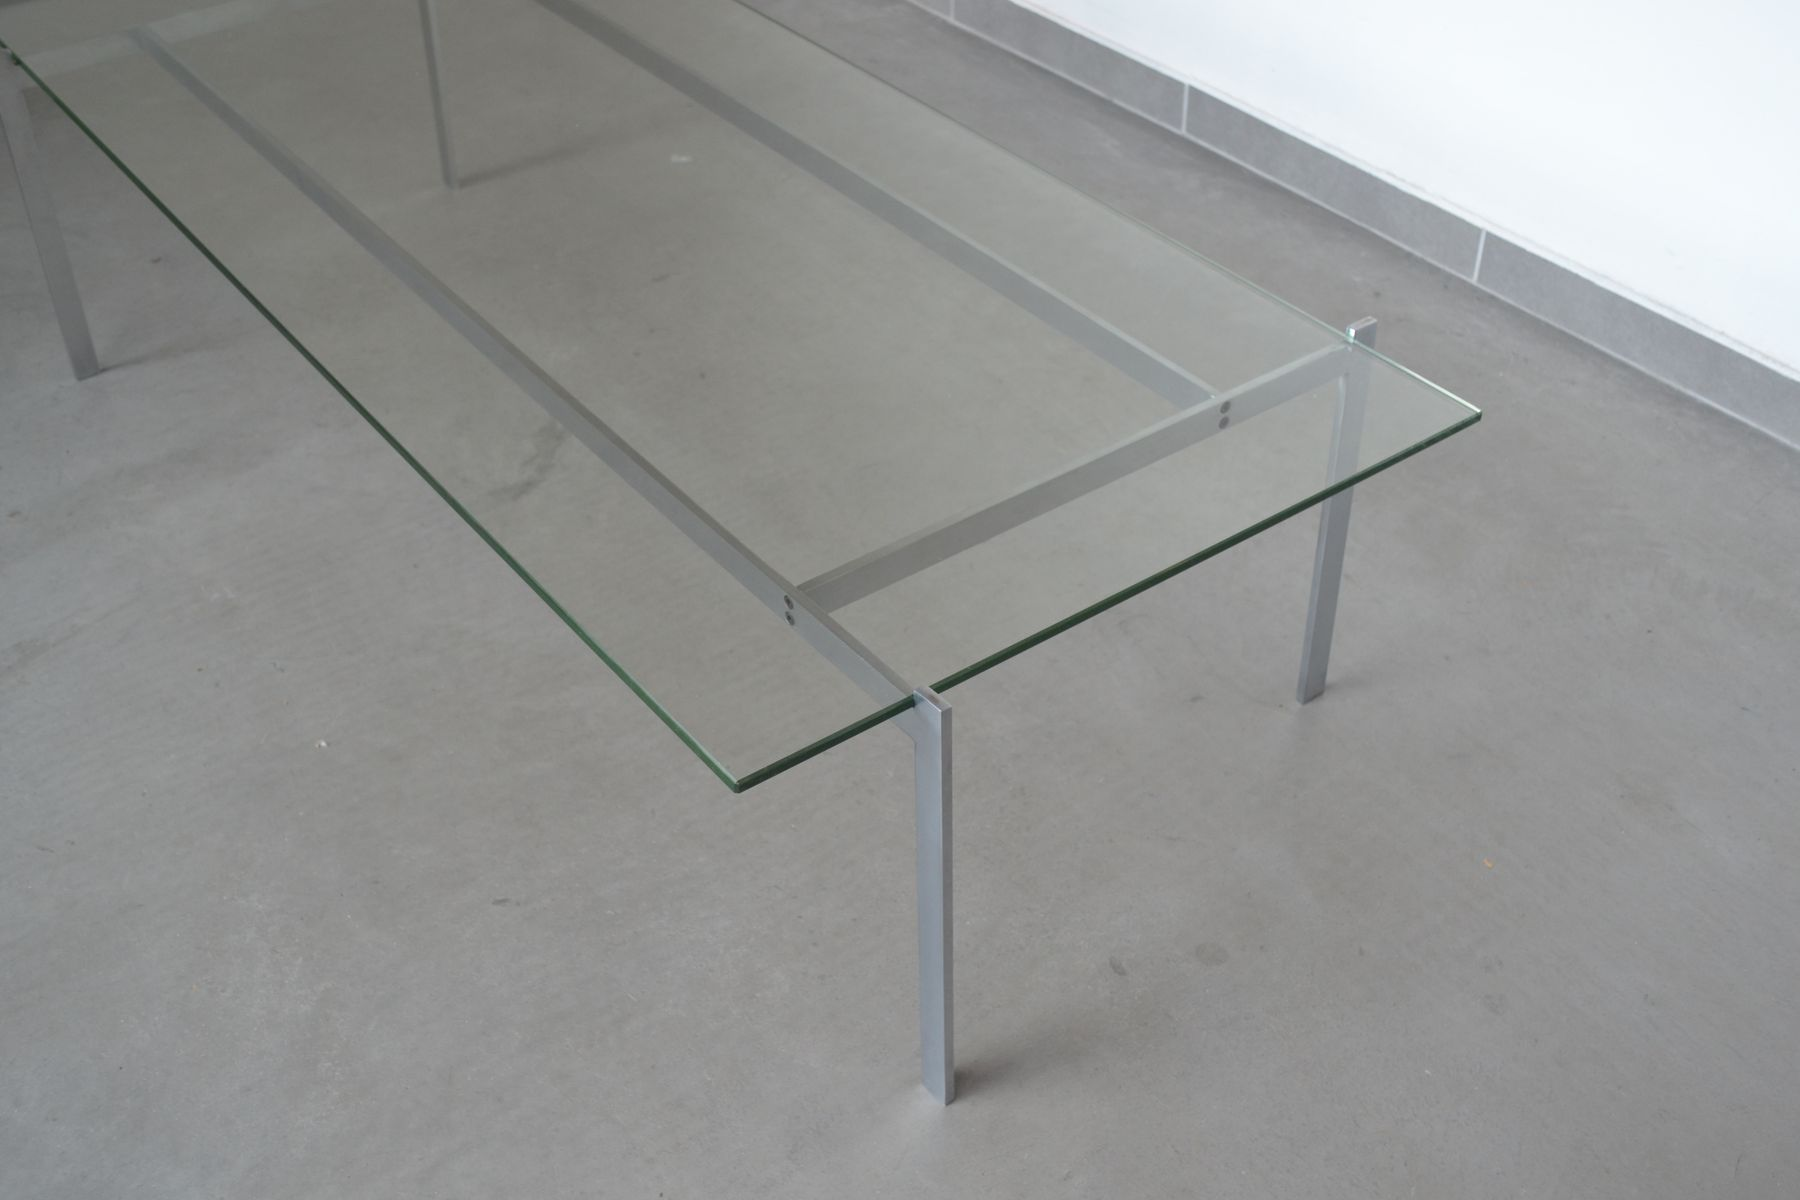 Minimalist Steel and Glass Rectangular Coffee Table 1960s for